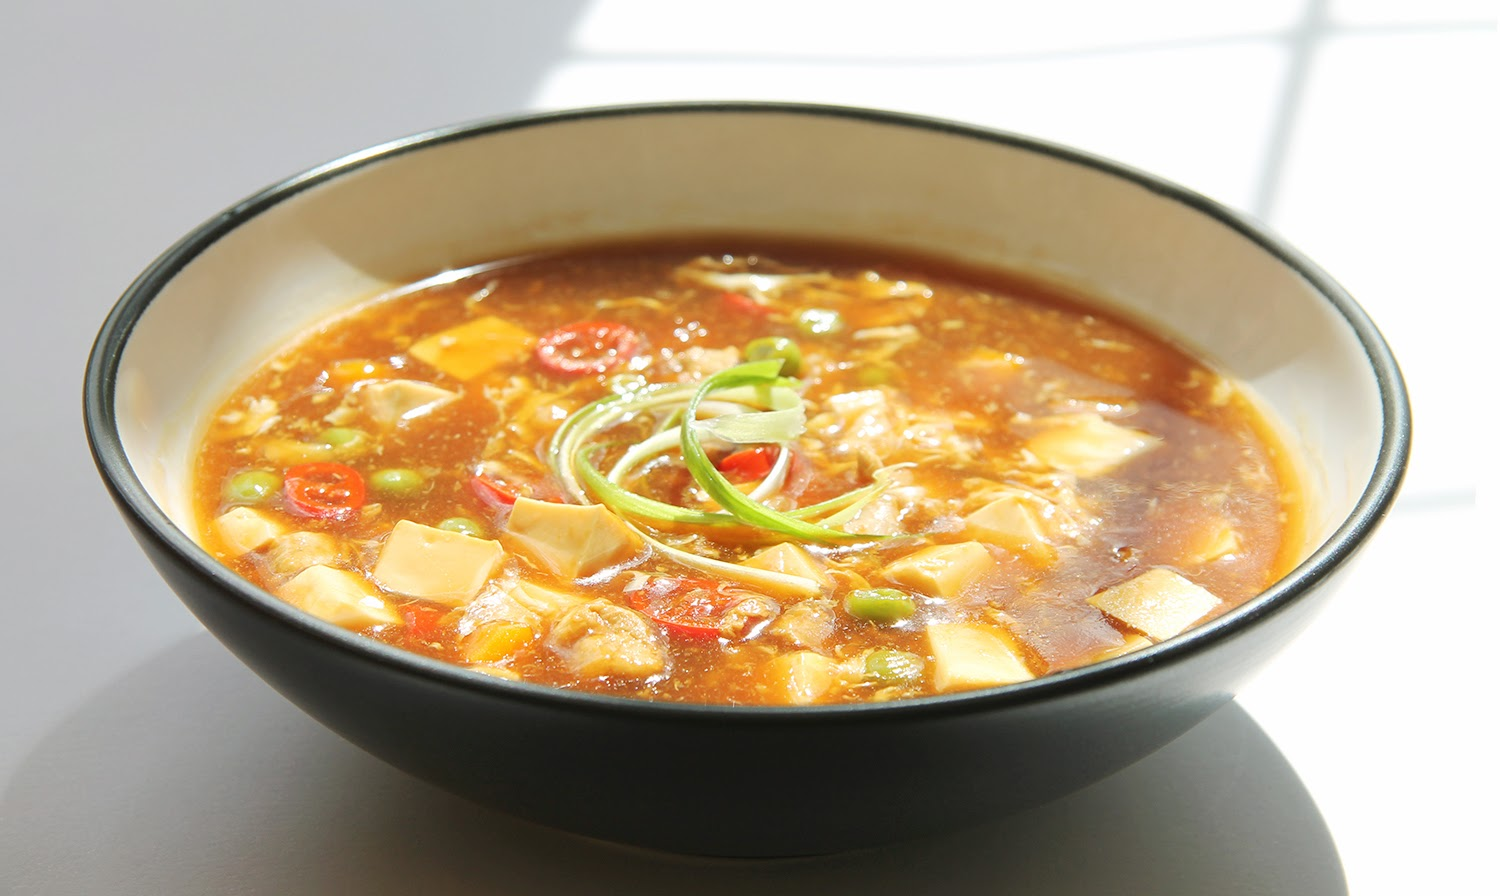 Watch the Hot and Sour Soup Recipe Video*